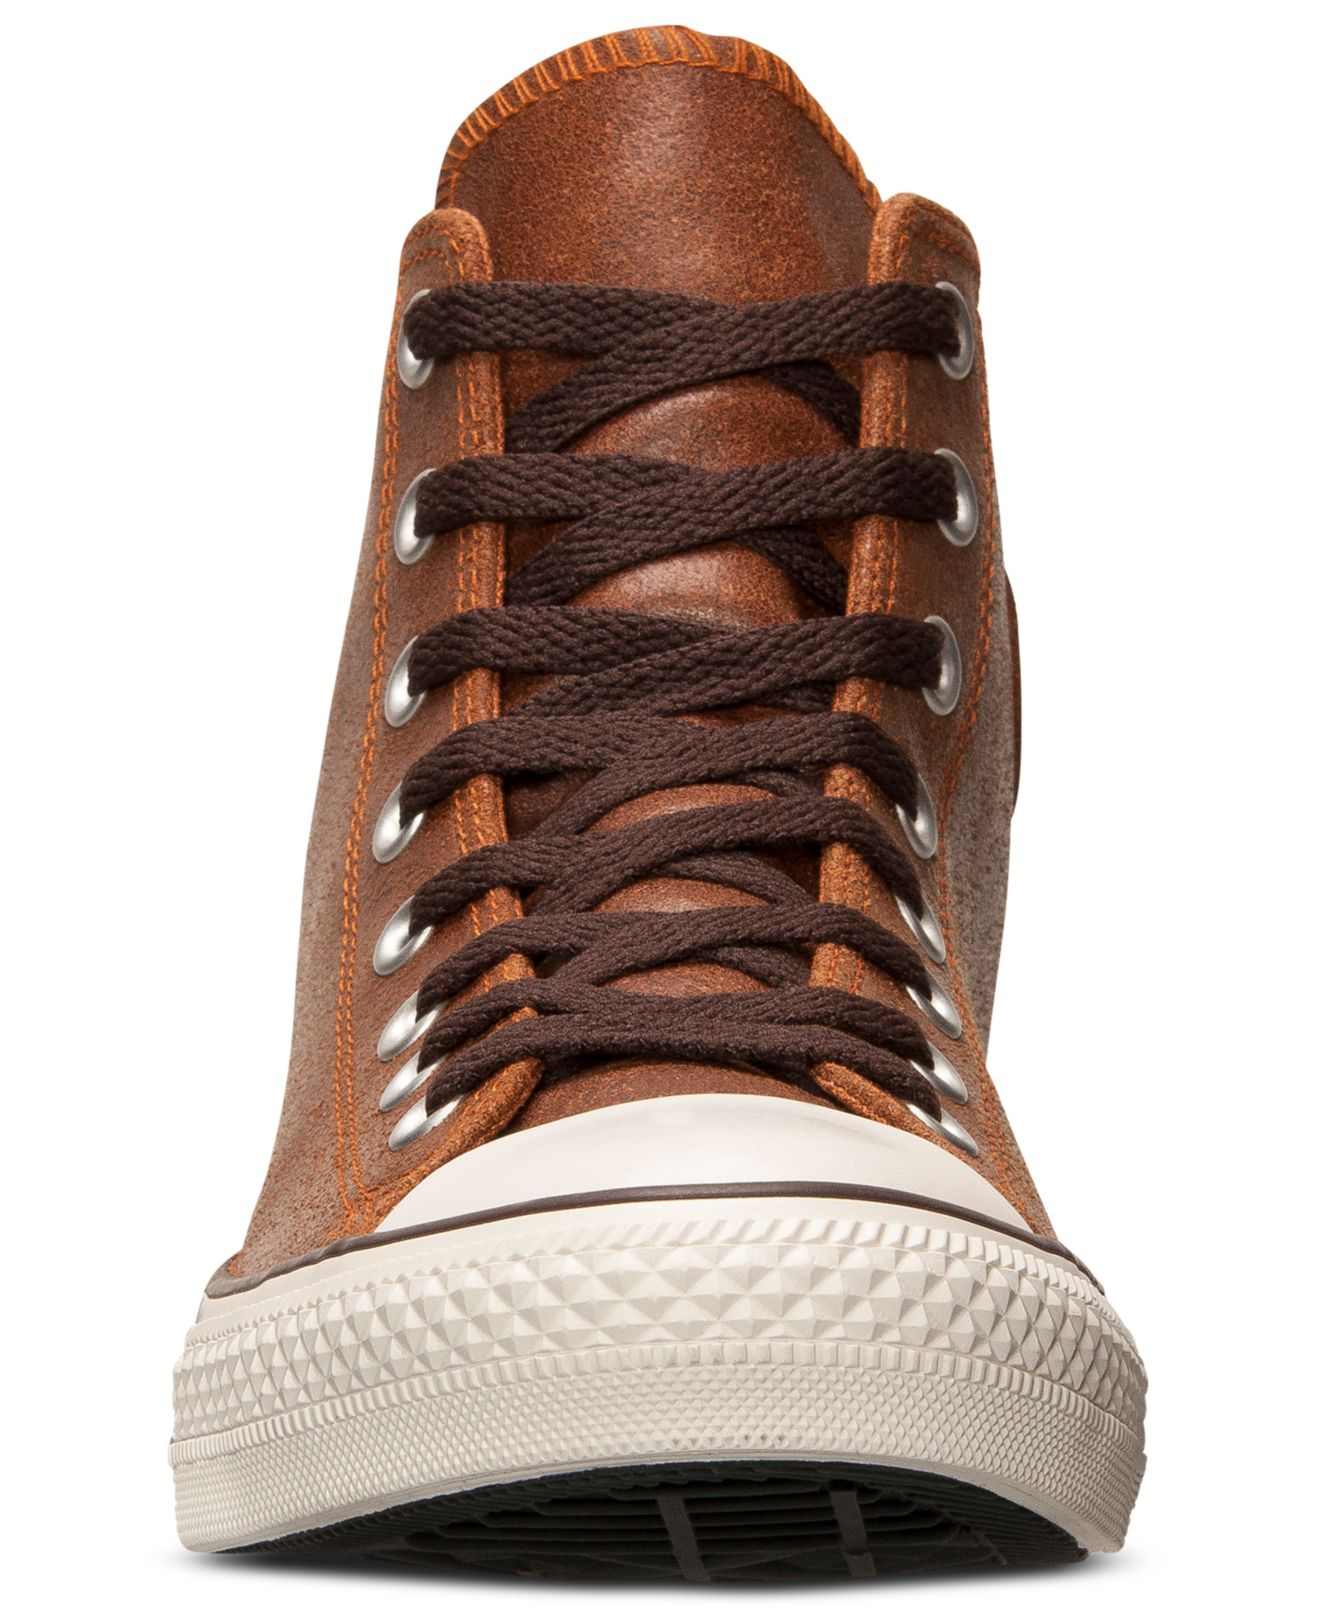 6abcb5f6b154 ... best price lyst converse mens all star vintage leather hi casual  sneakers bdc04 d3cc4